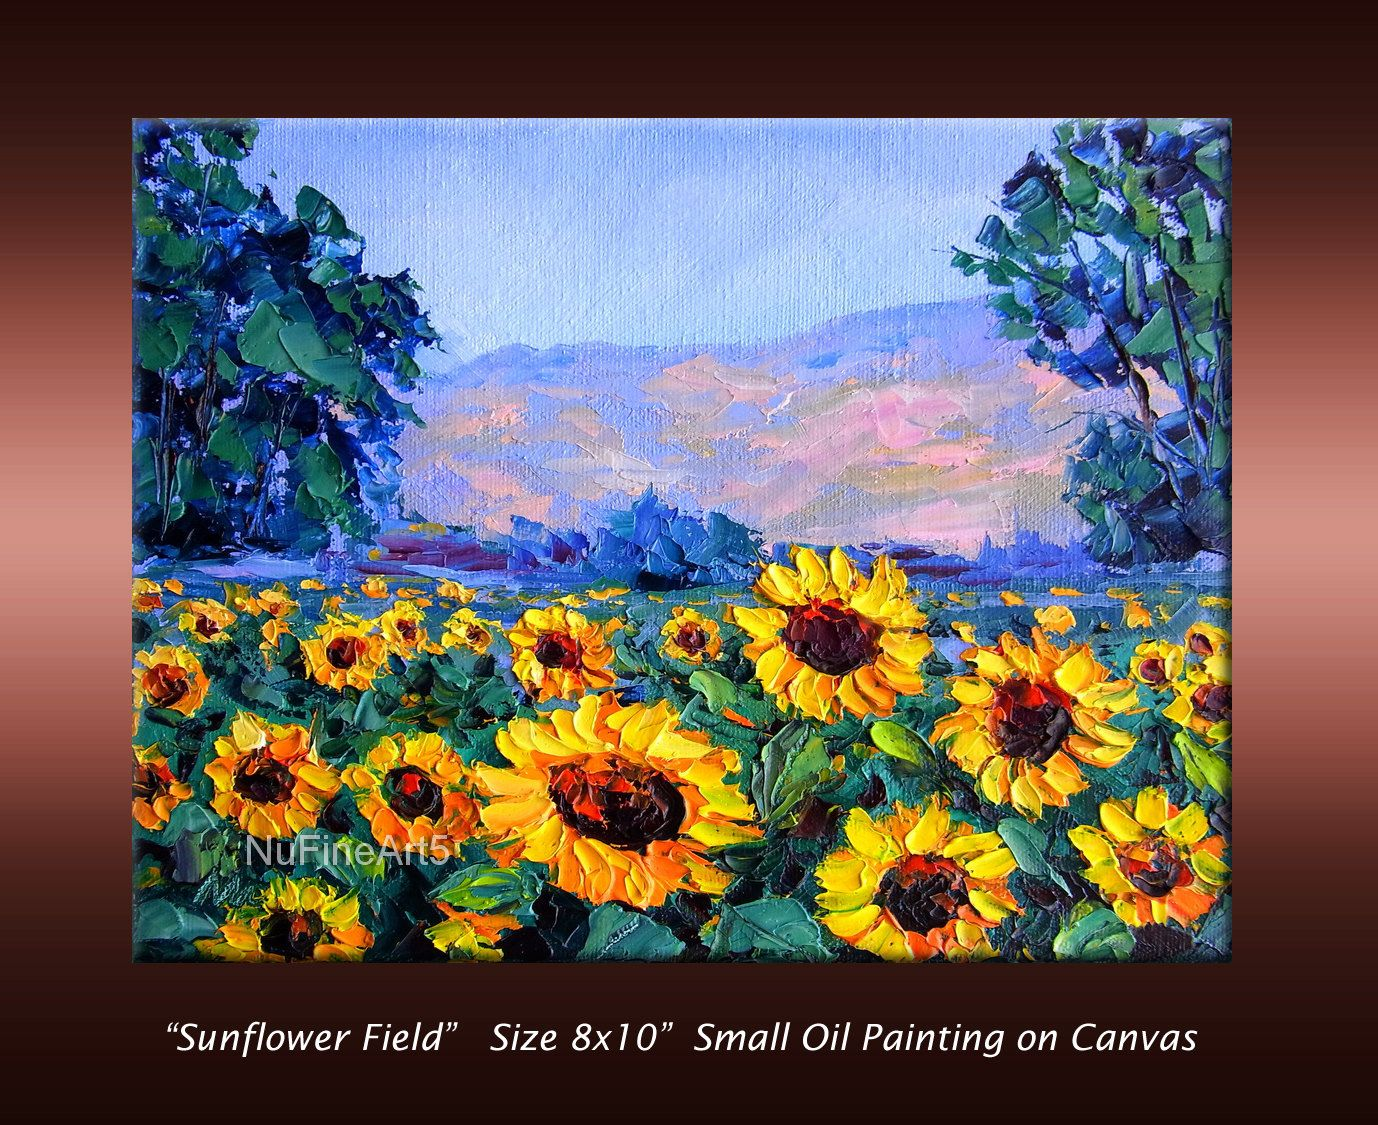 Sunflower Field Landscape Textured Palette Knife Original Oil Painting On Small 8x10 Quot Canvas Ready Pintura De Girasol Campo De Girasoles Girasoles Dibujo